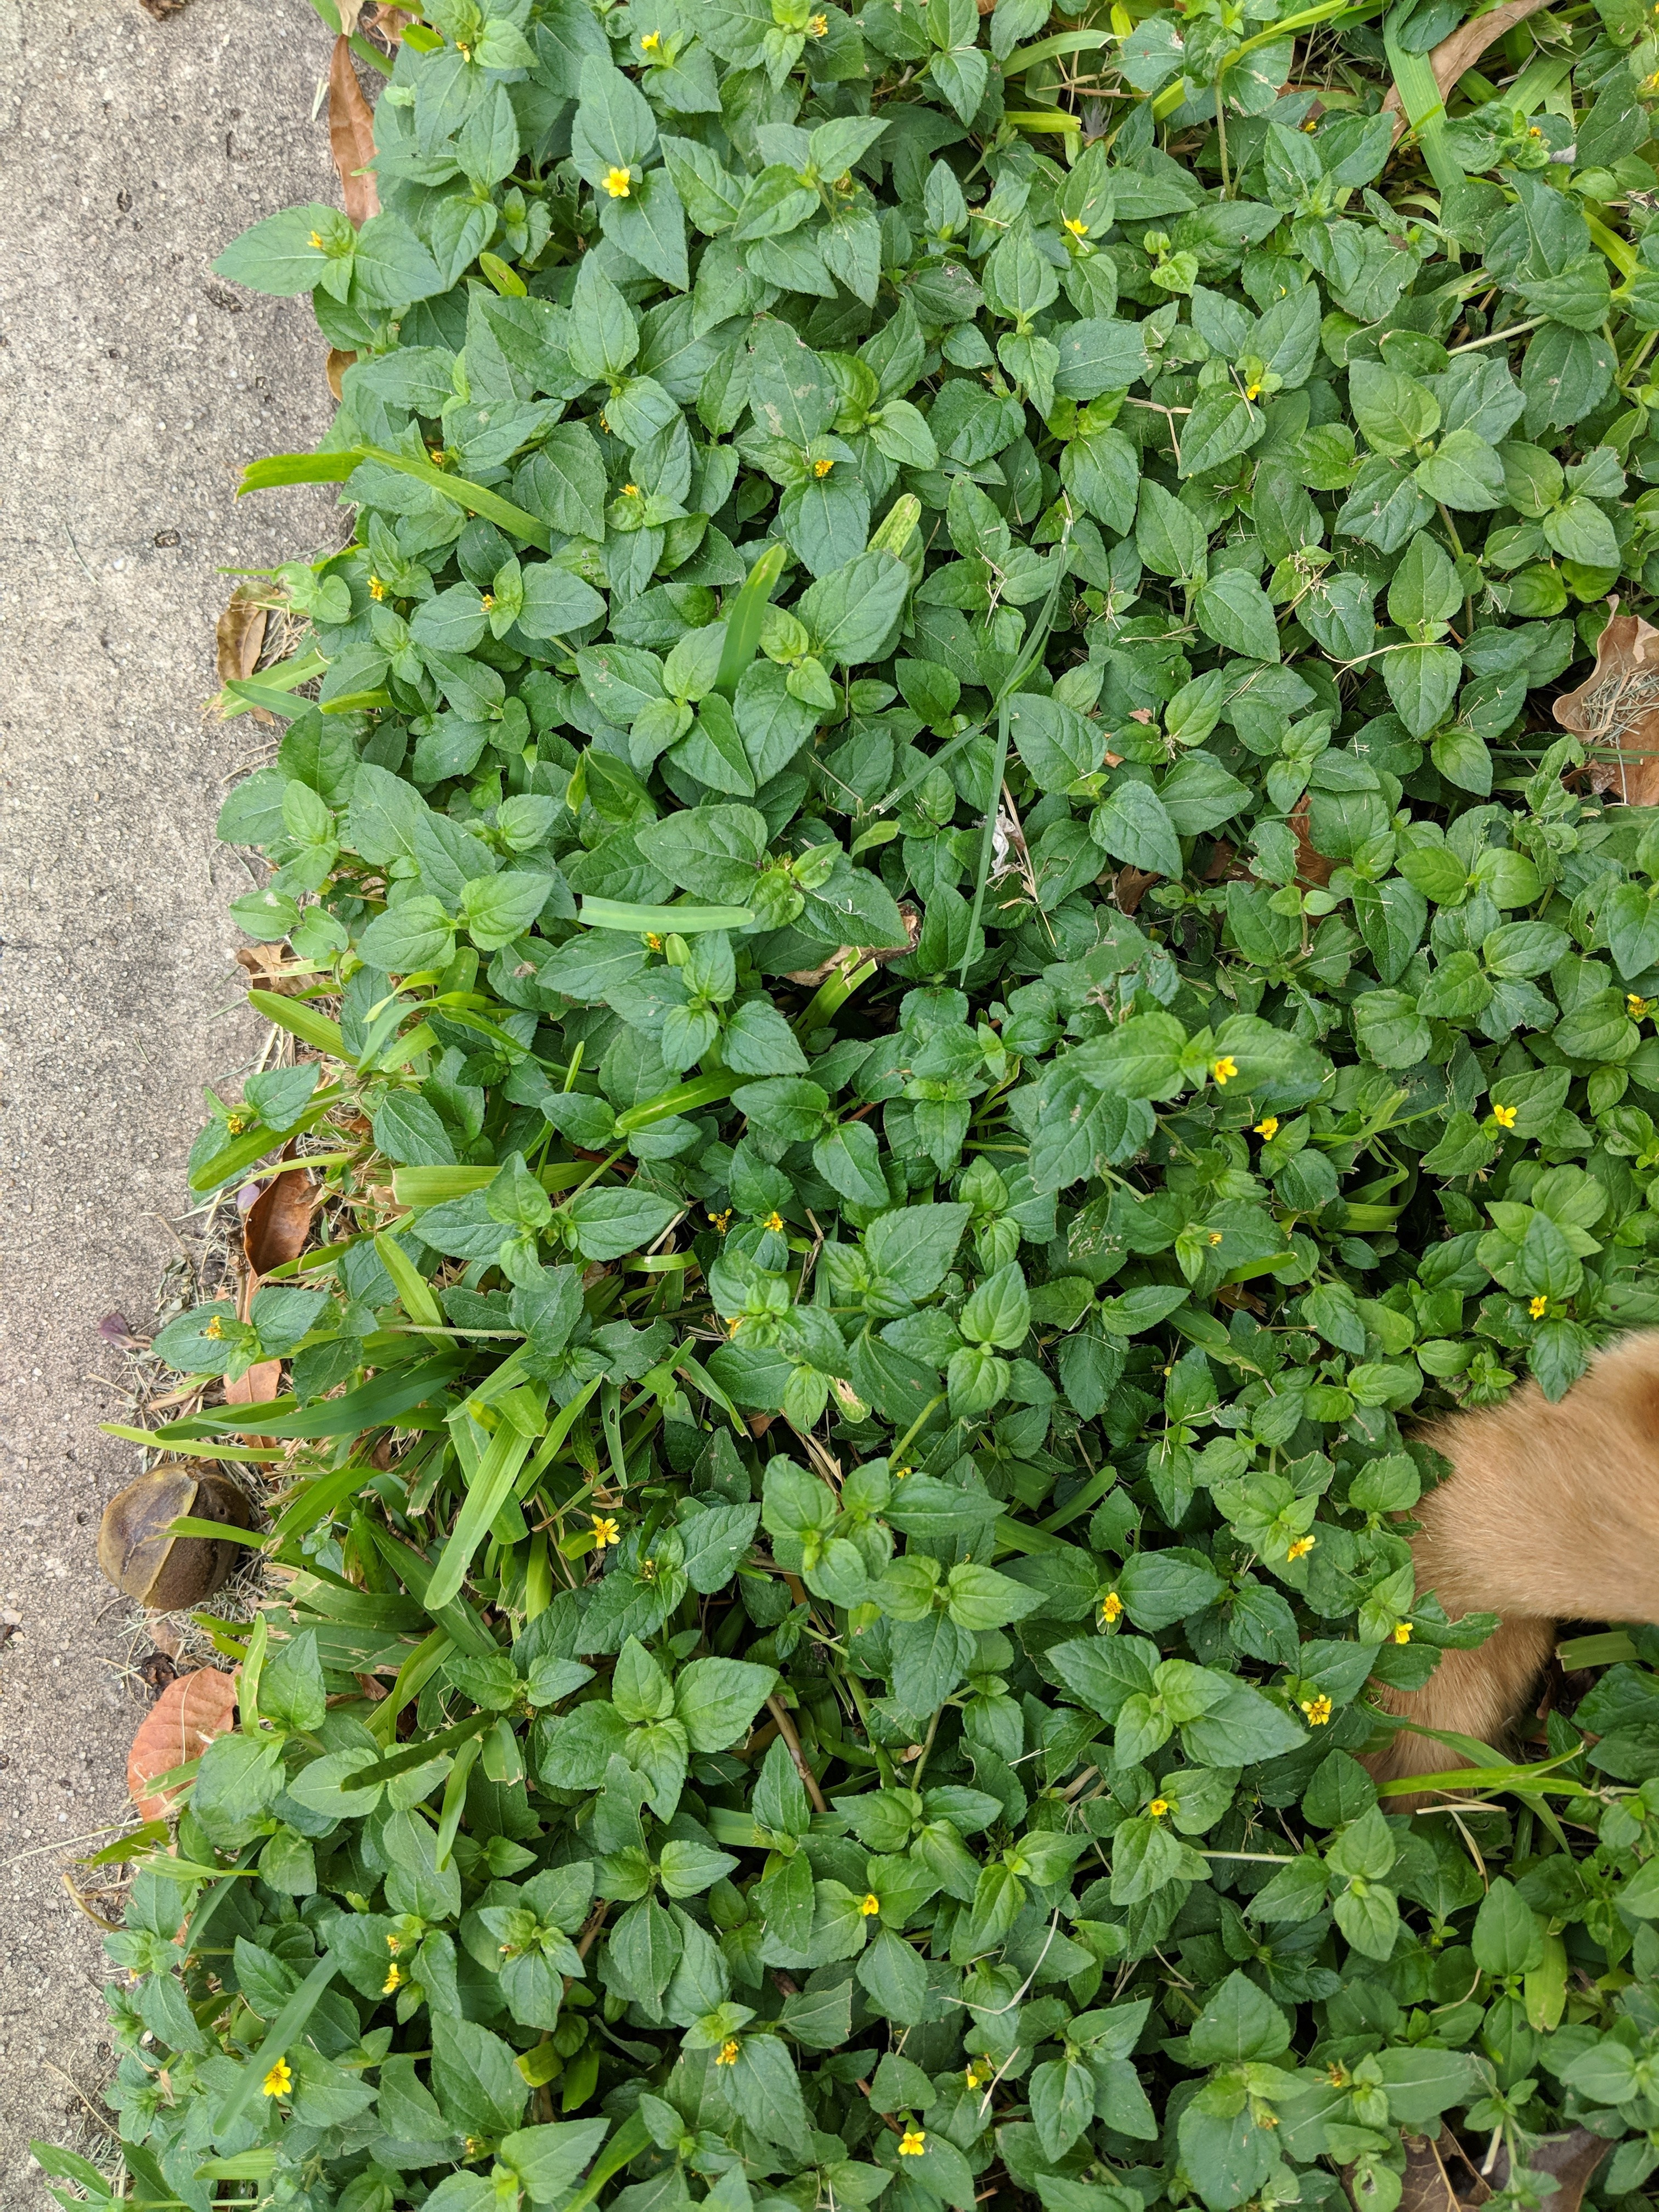 Weed identification and questions about weed control/lawn